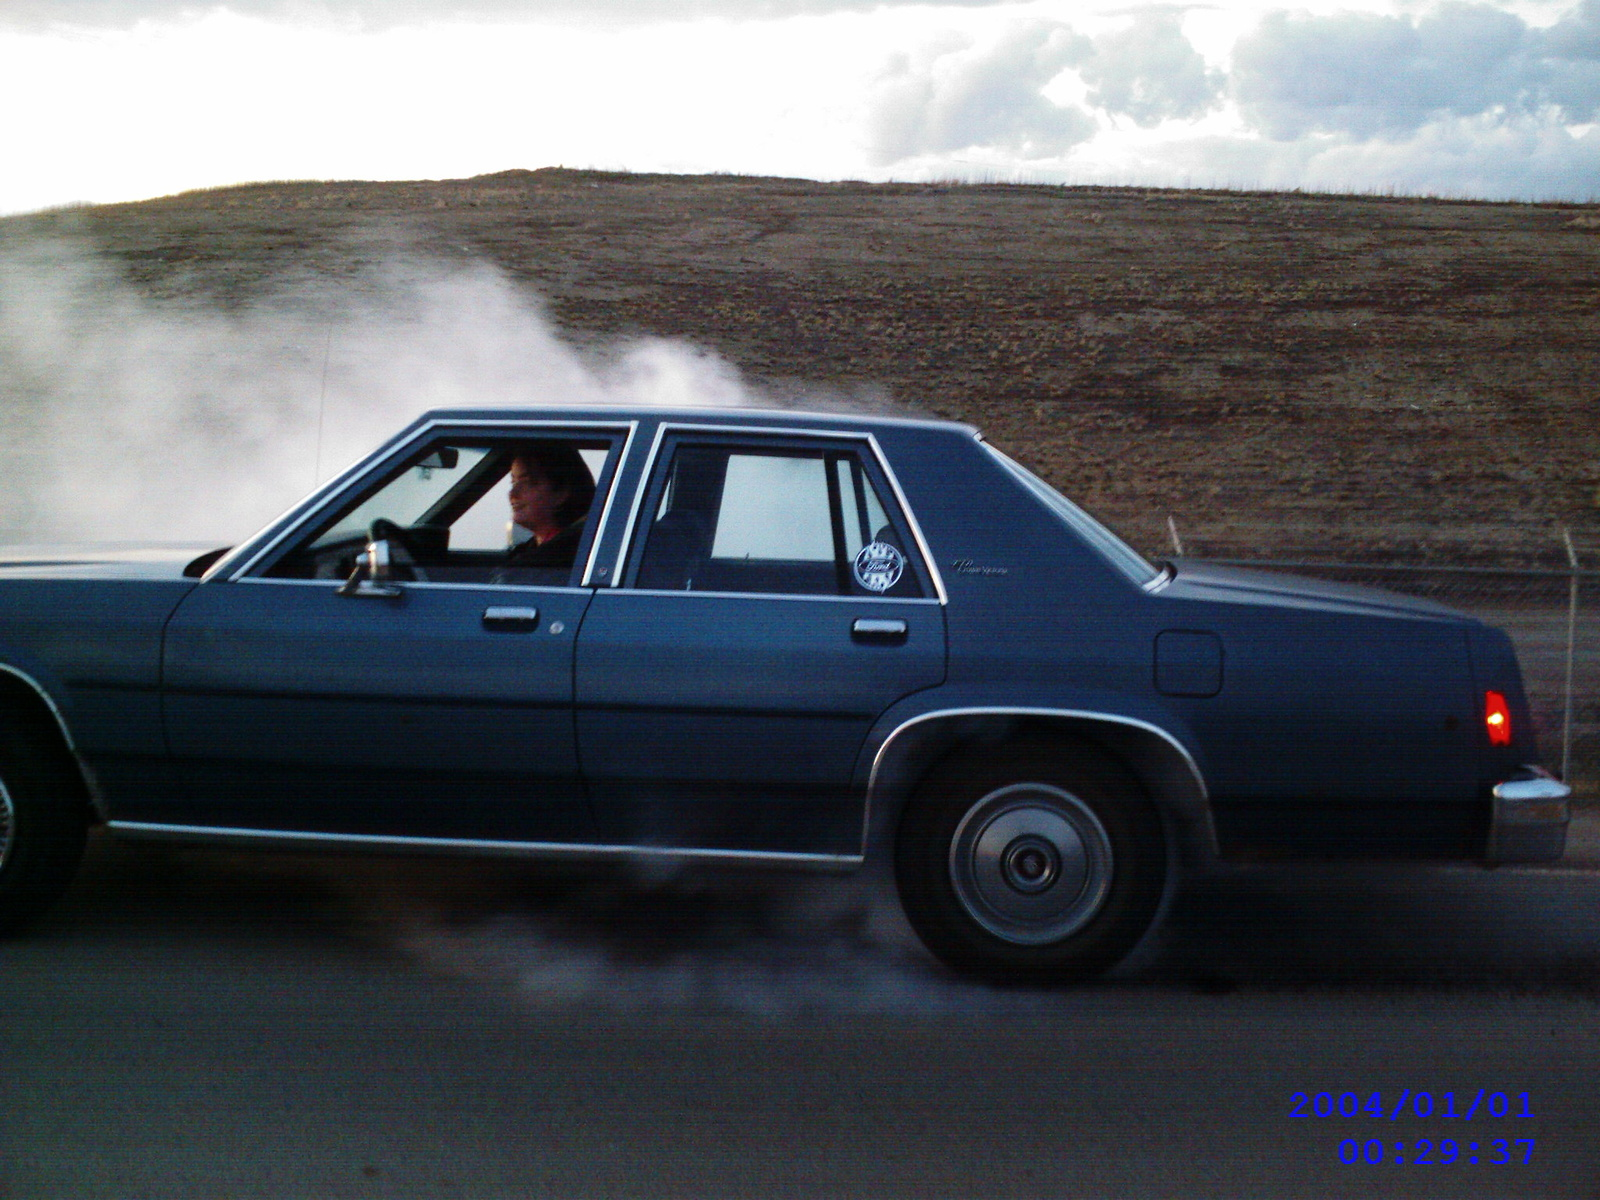 1986 Ford LTD Crown Victoria picture